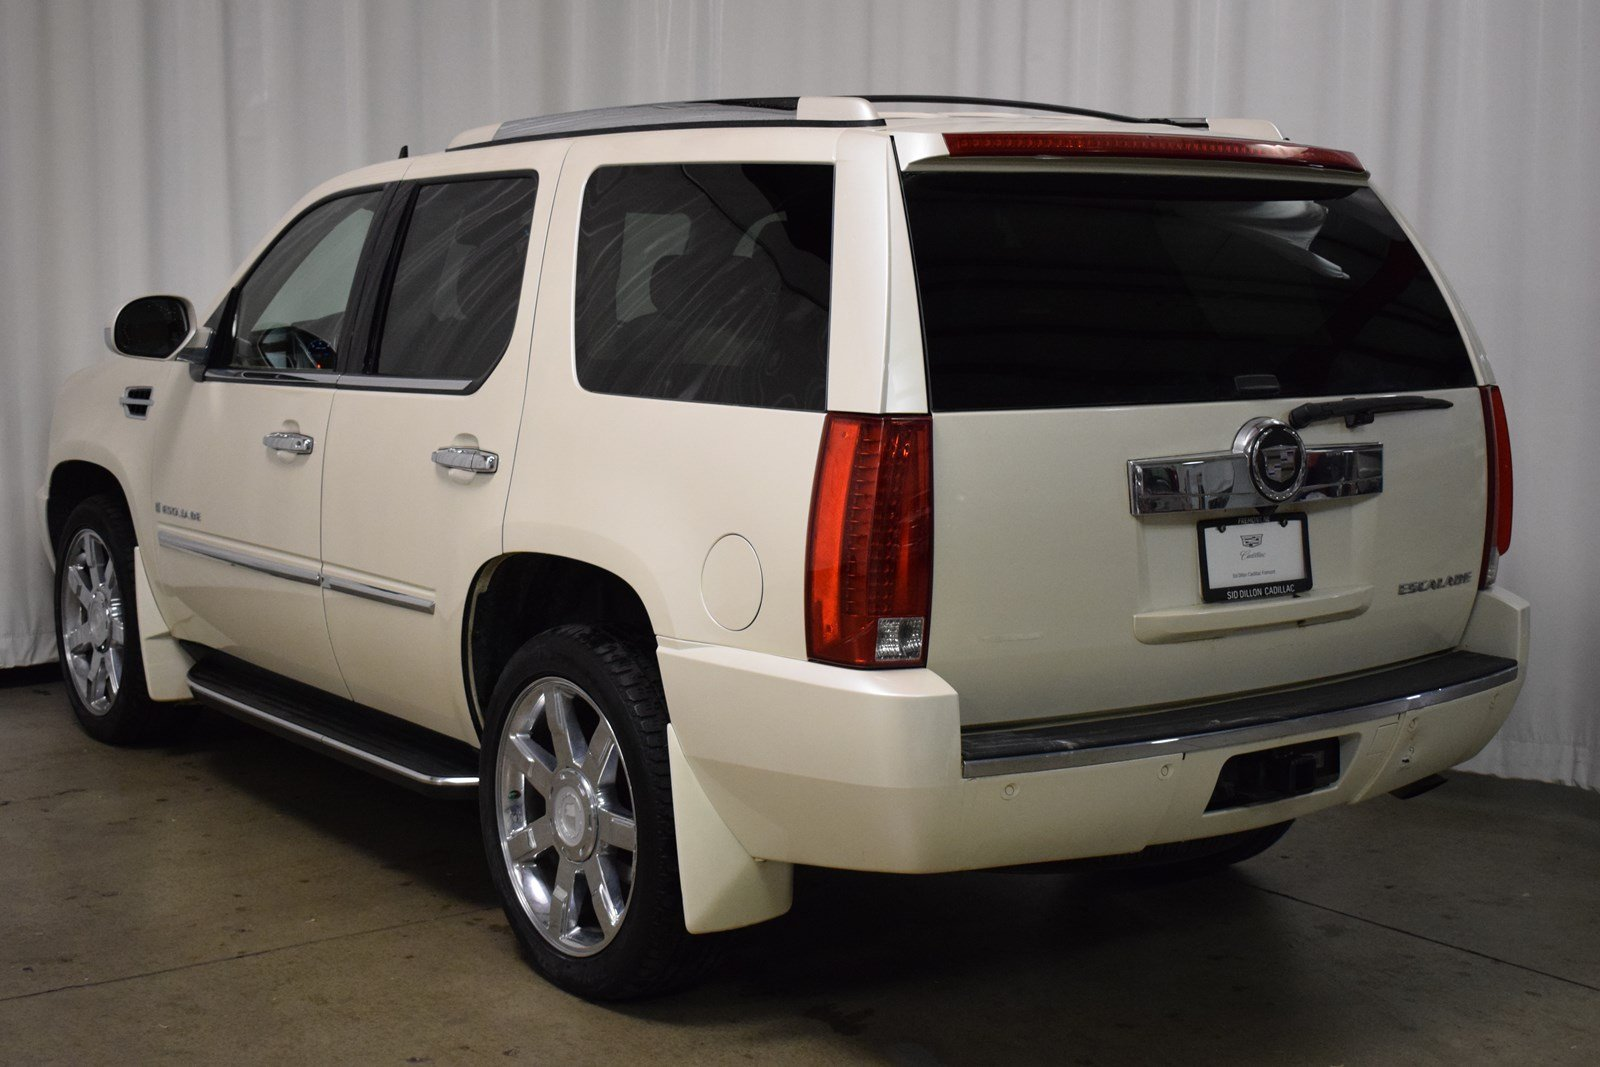 escalade used sykesville vehicle details id md esv cadillac